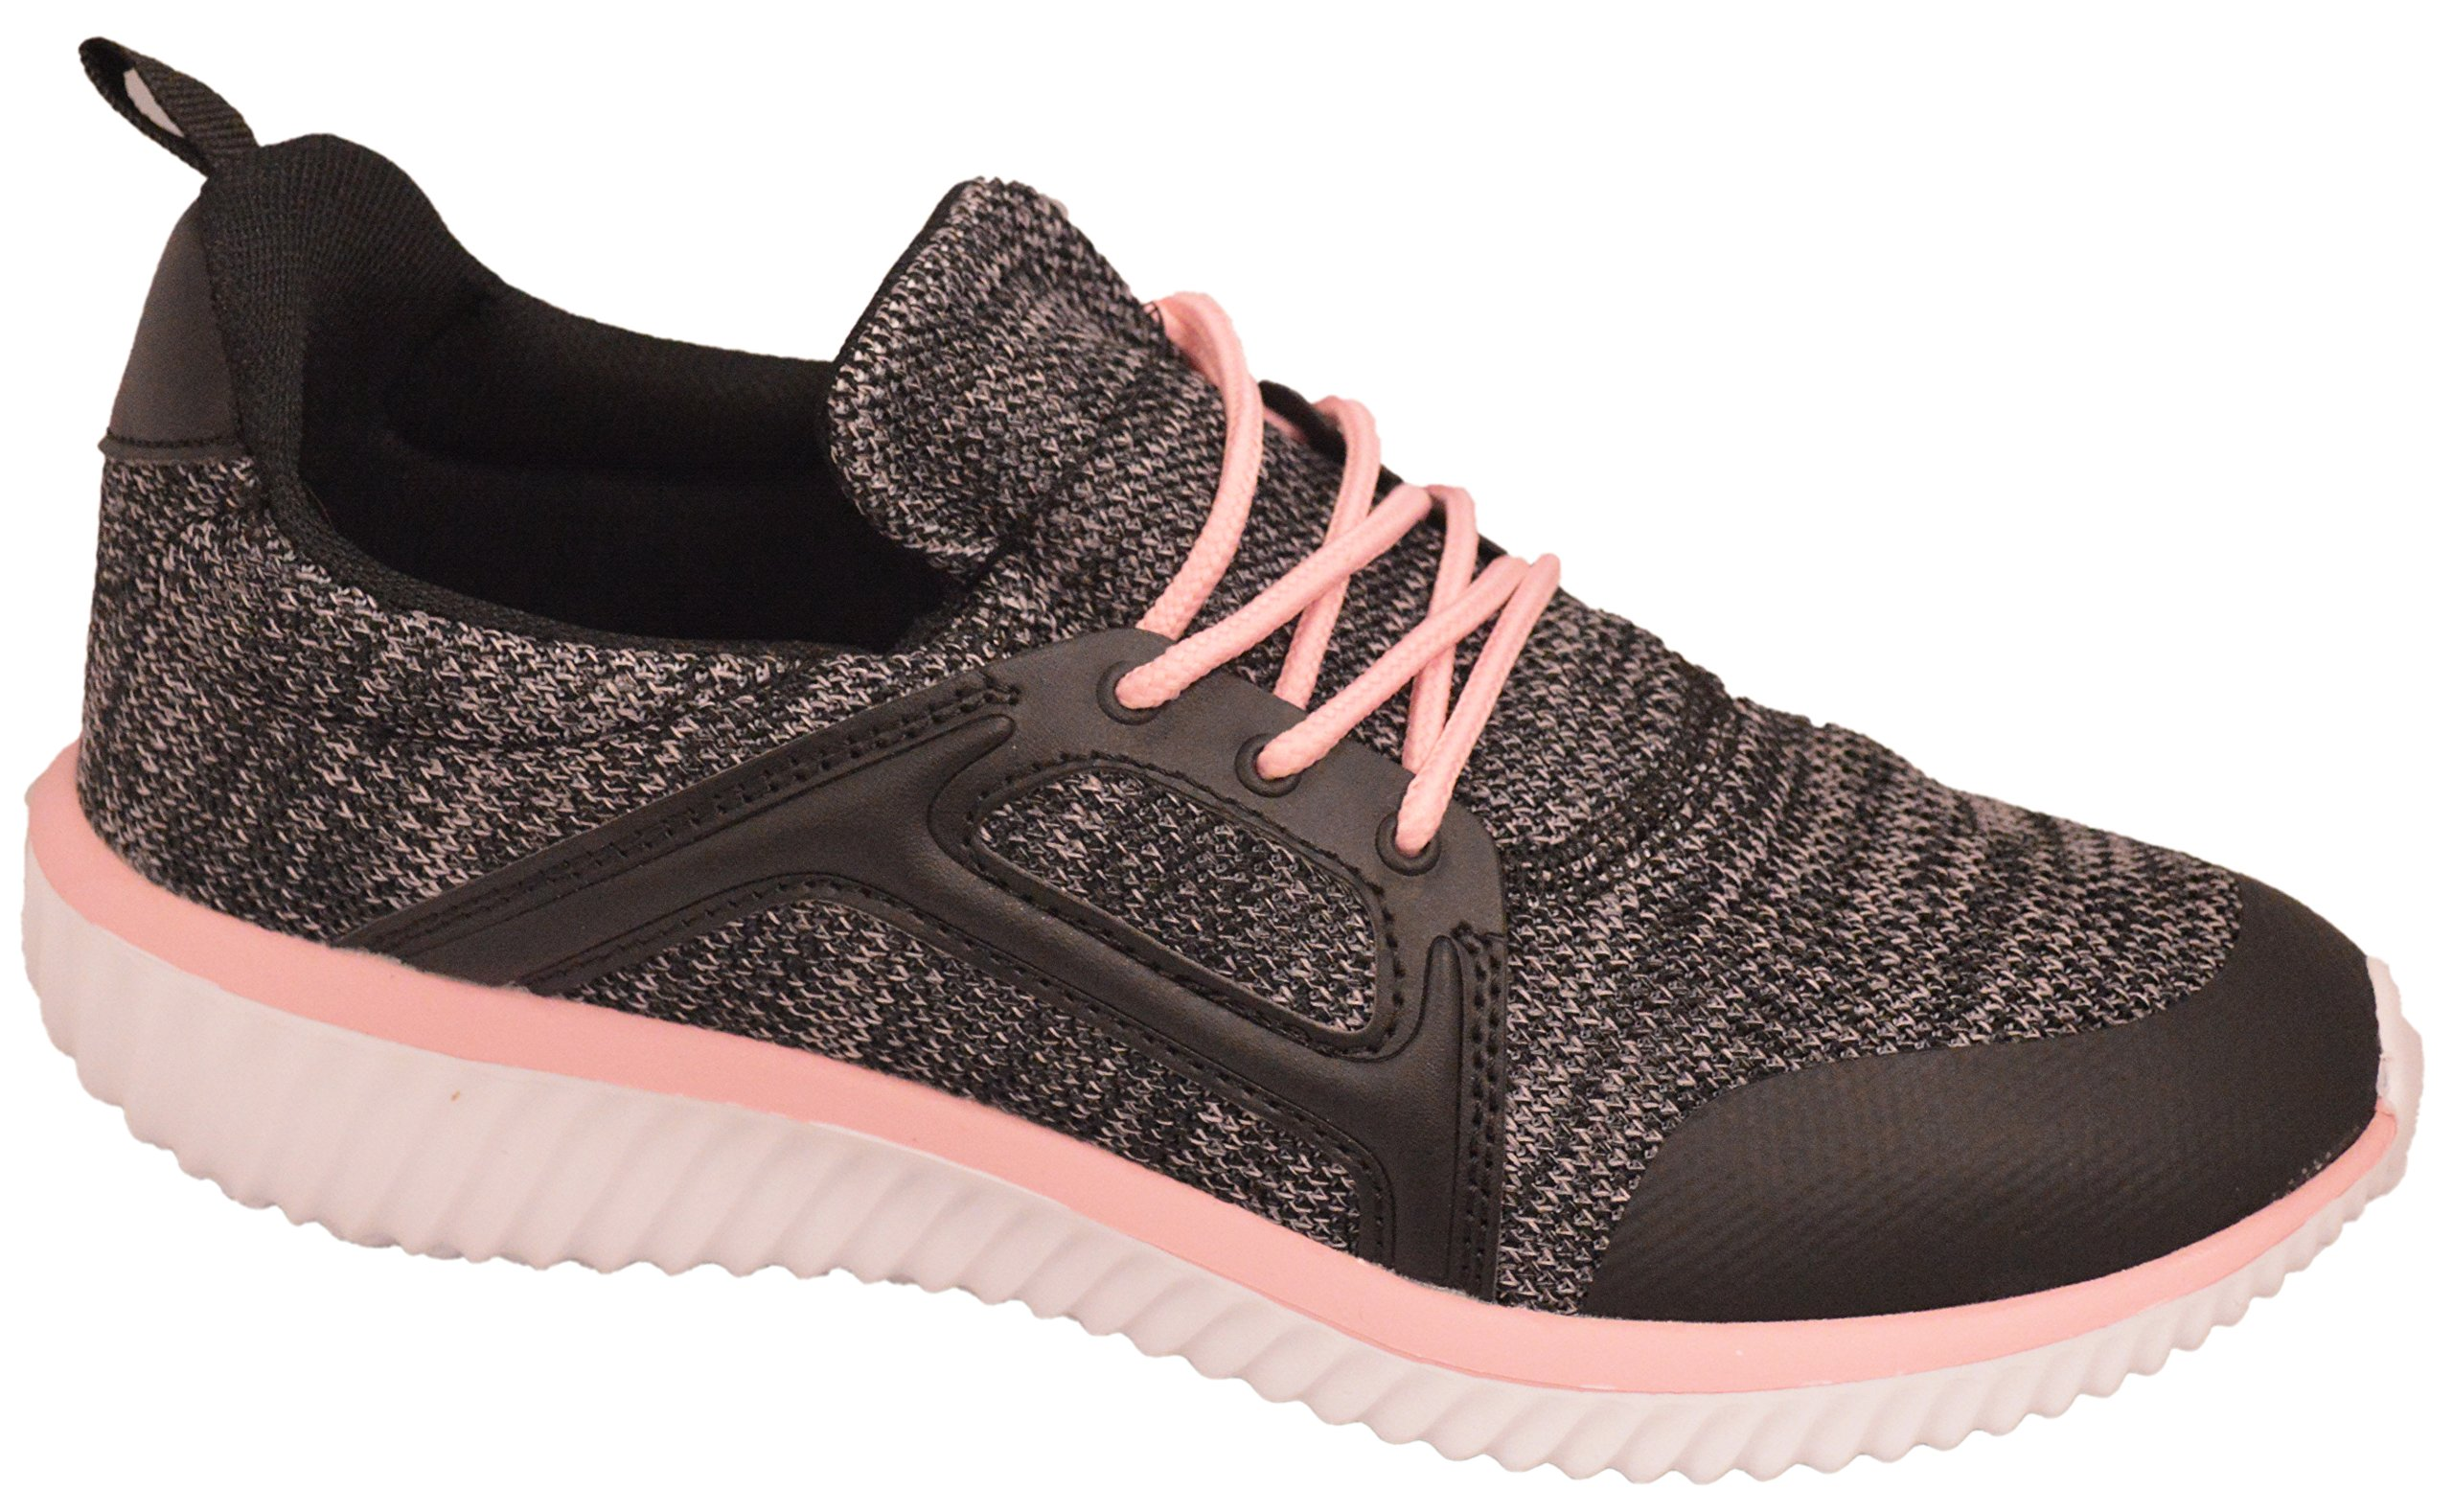 Shop Pretty Girl Womens Sneakers Athletic Knit Mesh Running Light Weight Go Easy Walking Casual Comfort Running Shoes 2.0 (10, Black and Pink - J3947B)